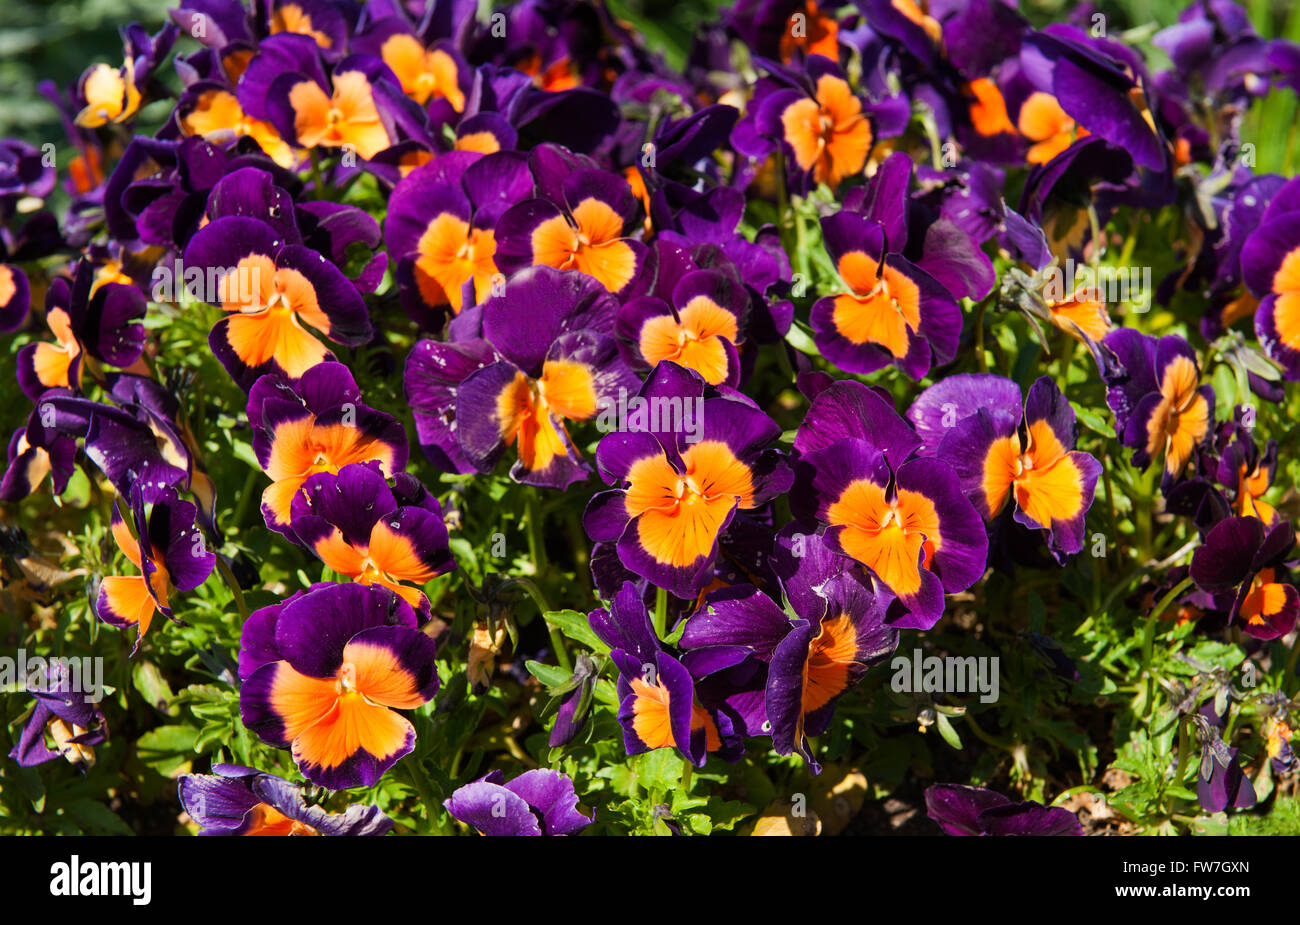 Garden flowers names - Pink And Orange Flowers In The Garden Latin Name Viola Tricolor